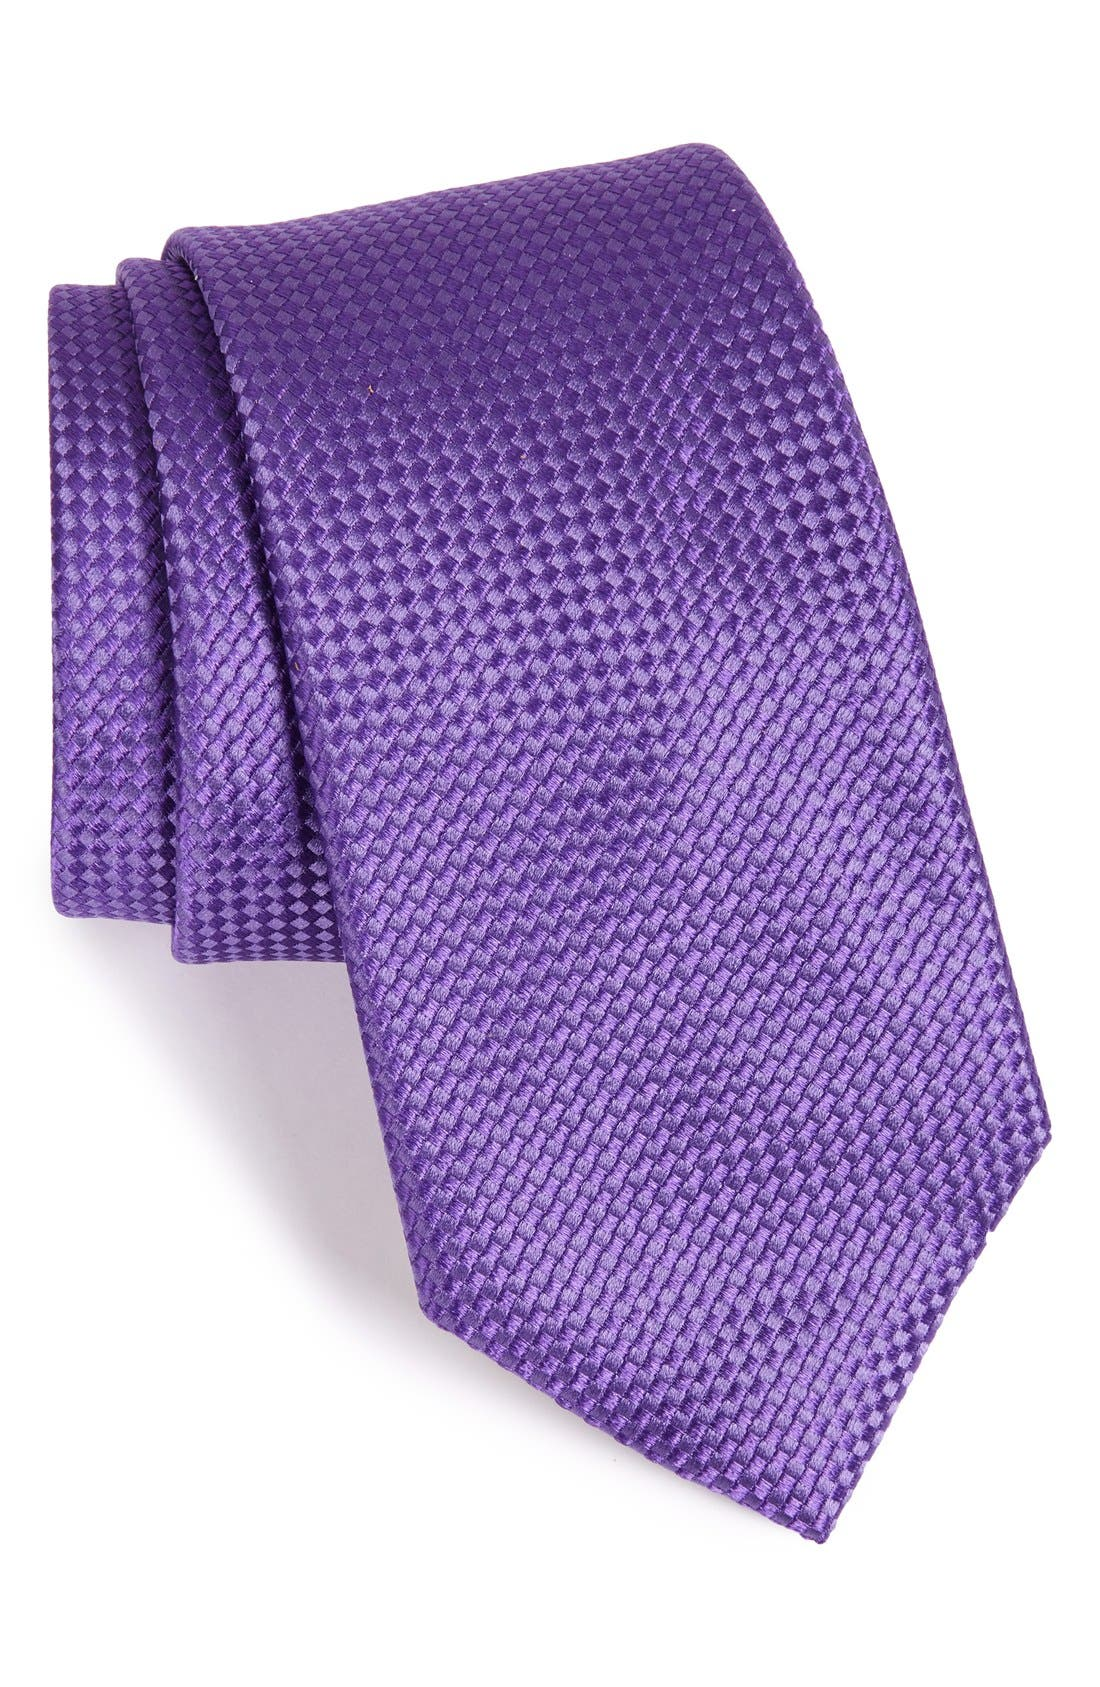 NORDSTROM MEN'S SHOP 'Nate' Solid Silk Tie